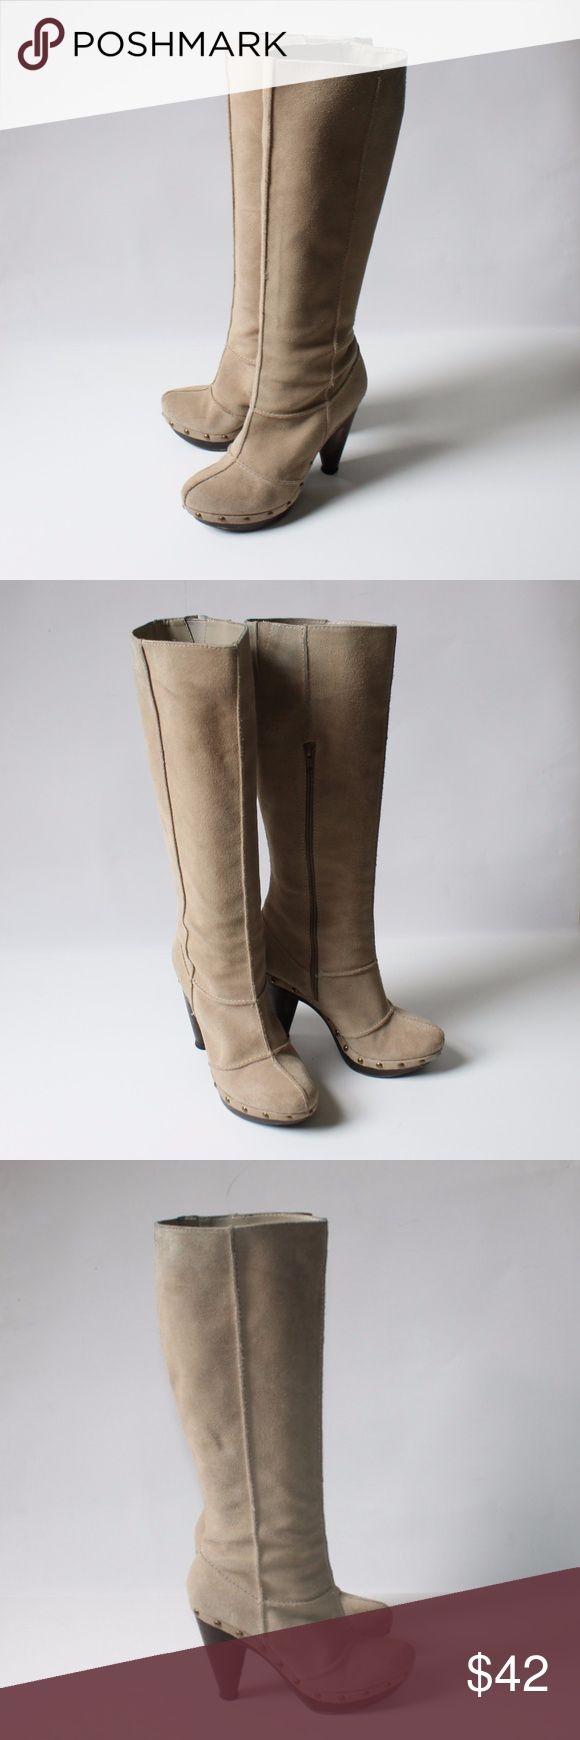 """Seychelles Suede Wood High Heel Clog Boots Seychelles light beige suede knee high clog boots have wood high heels, half zip closures, wood outer sole with protective caps and tread, and floral textile interior. They are in excellent condition. The only issue is faint marks on the upper back opening. See the last photo.   Size 7  Shaft 14.5"""" Opening 14"""" Heel 4"""" Platform 1"""" Seychelles Shoes Heeled Boots"""